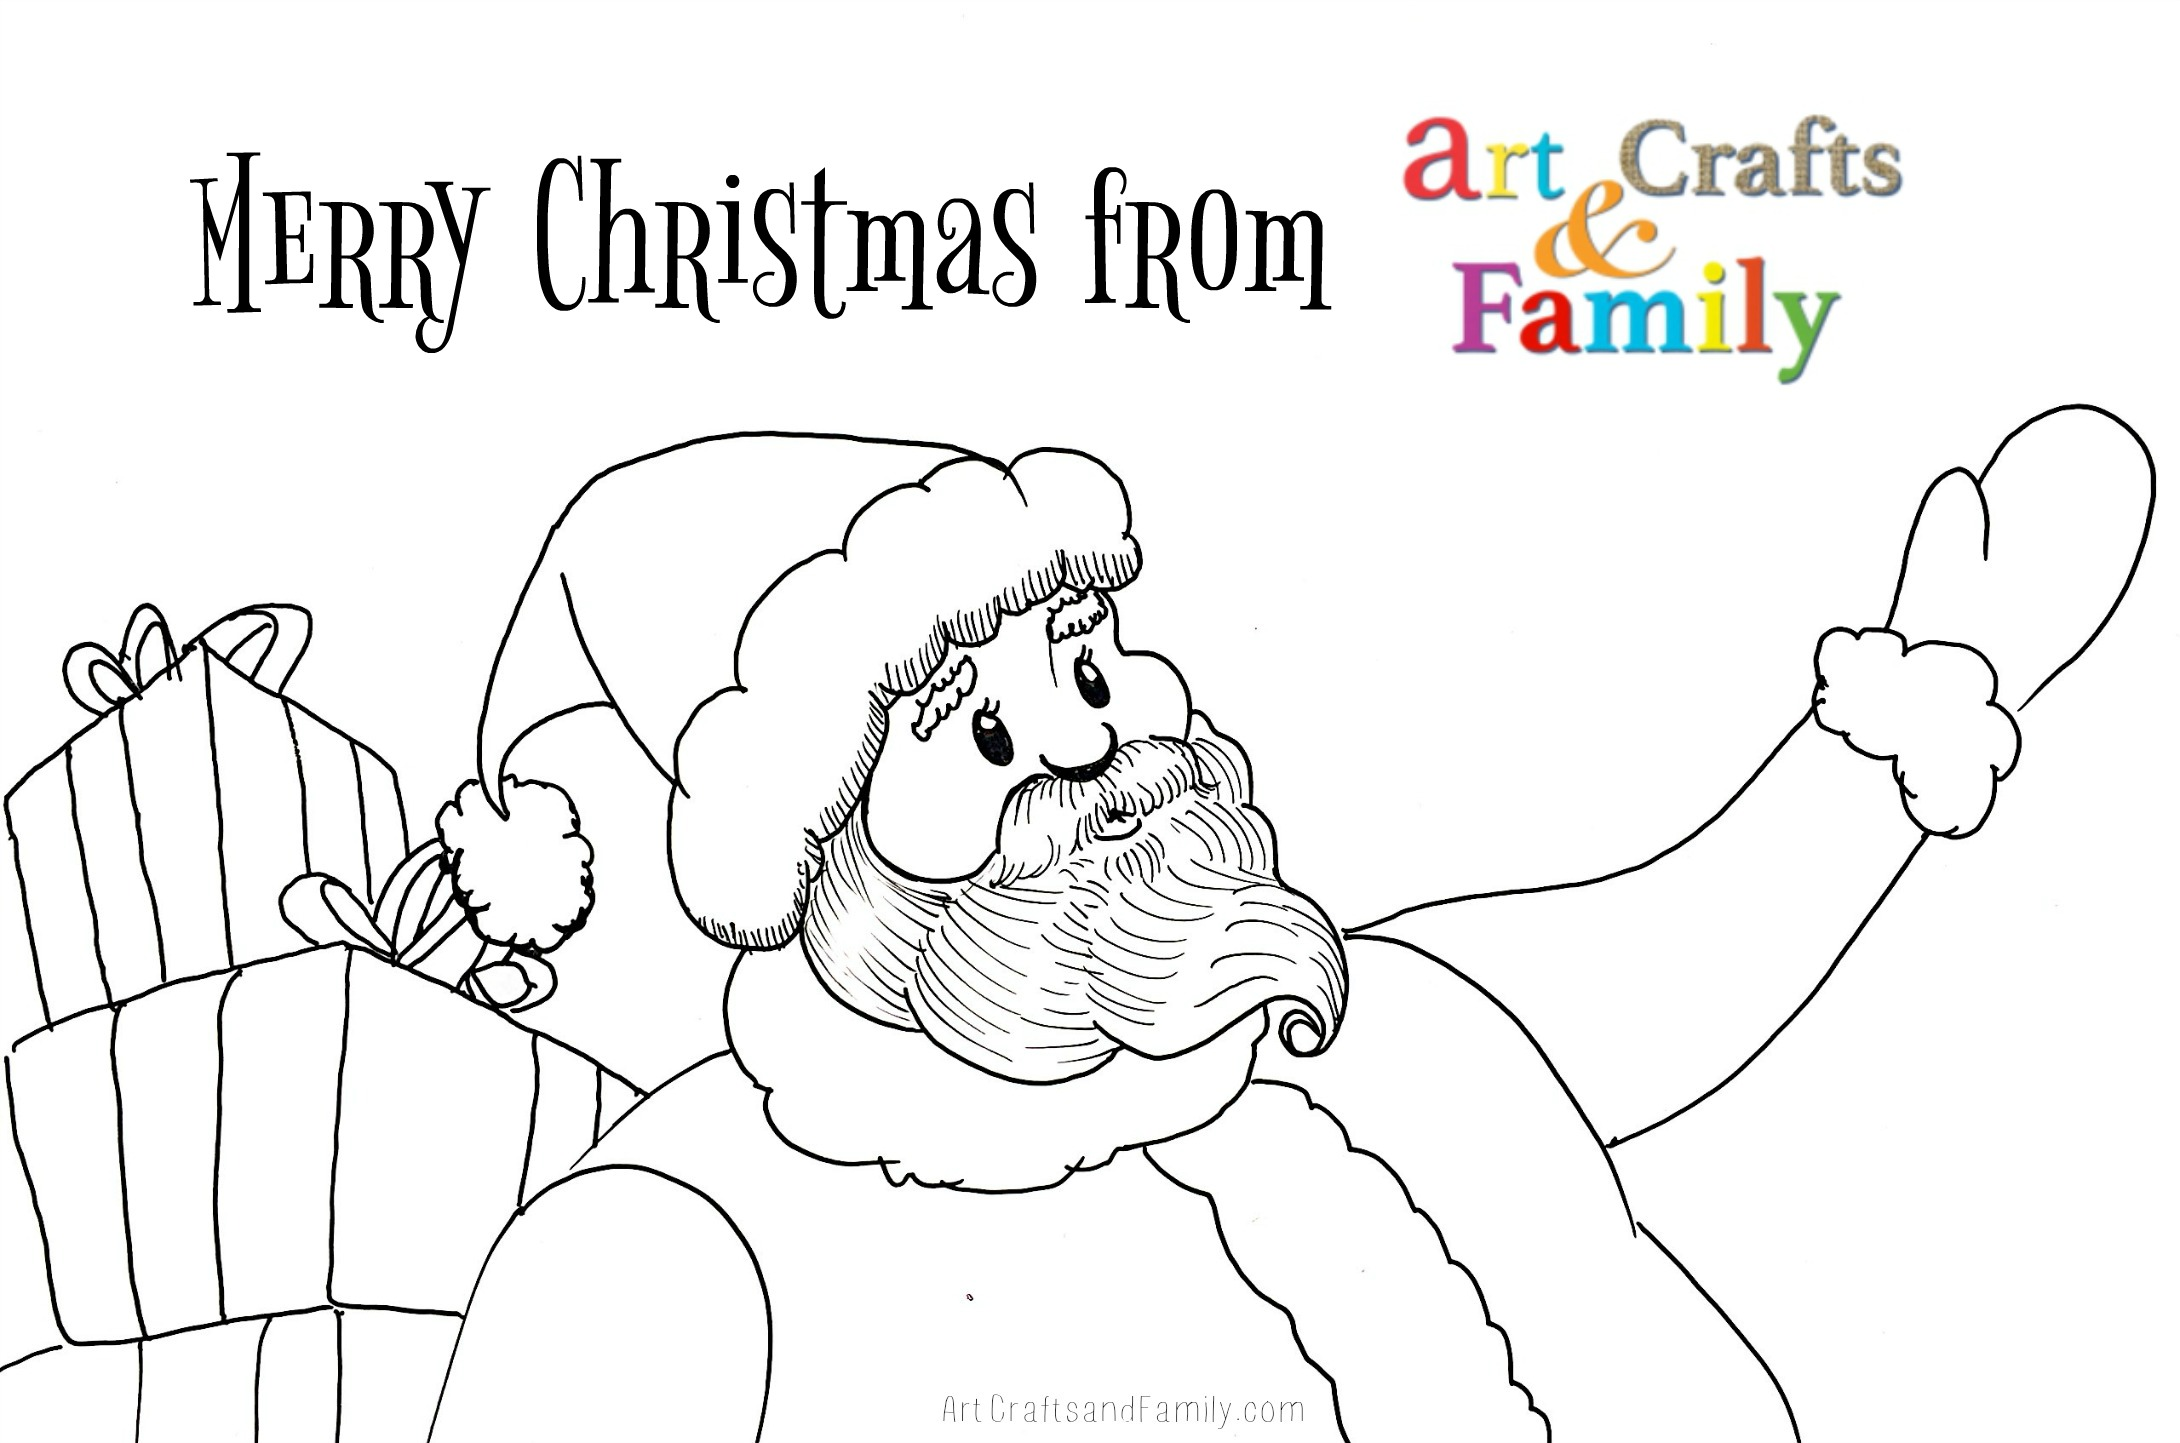 Free Printable Christmas Coloring Pages - Art Crafts & Family